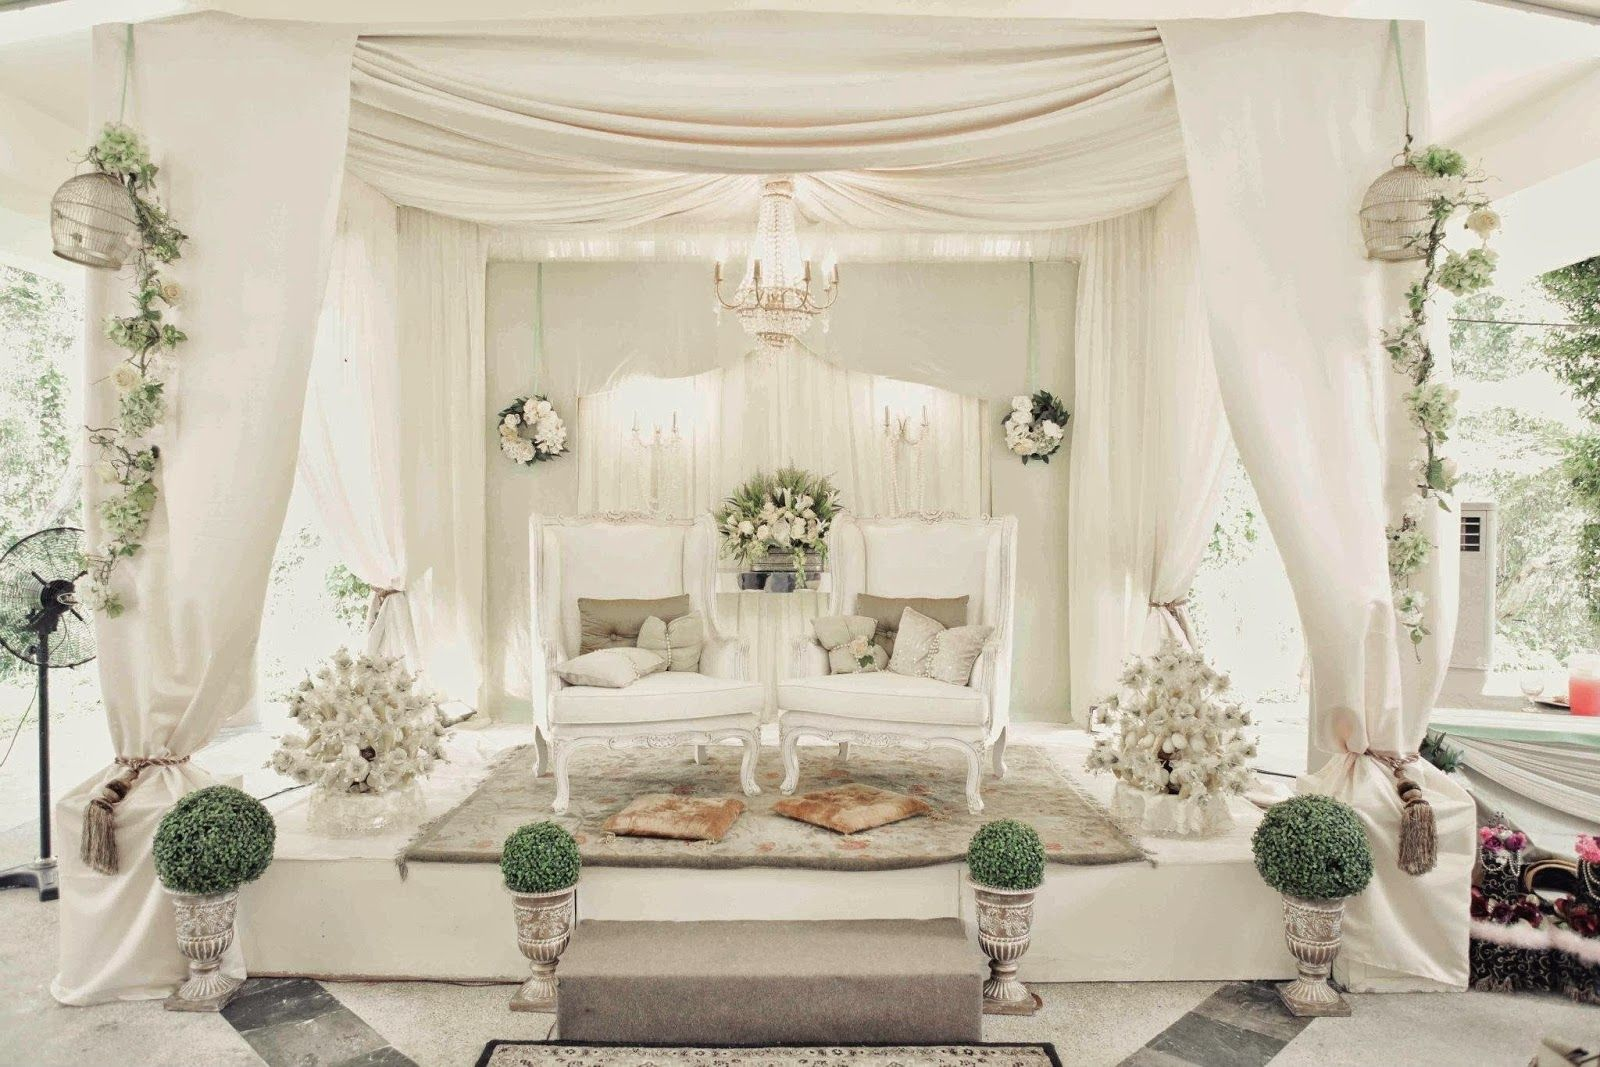 Pelamin terkini wedding pinterest wedding wedding